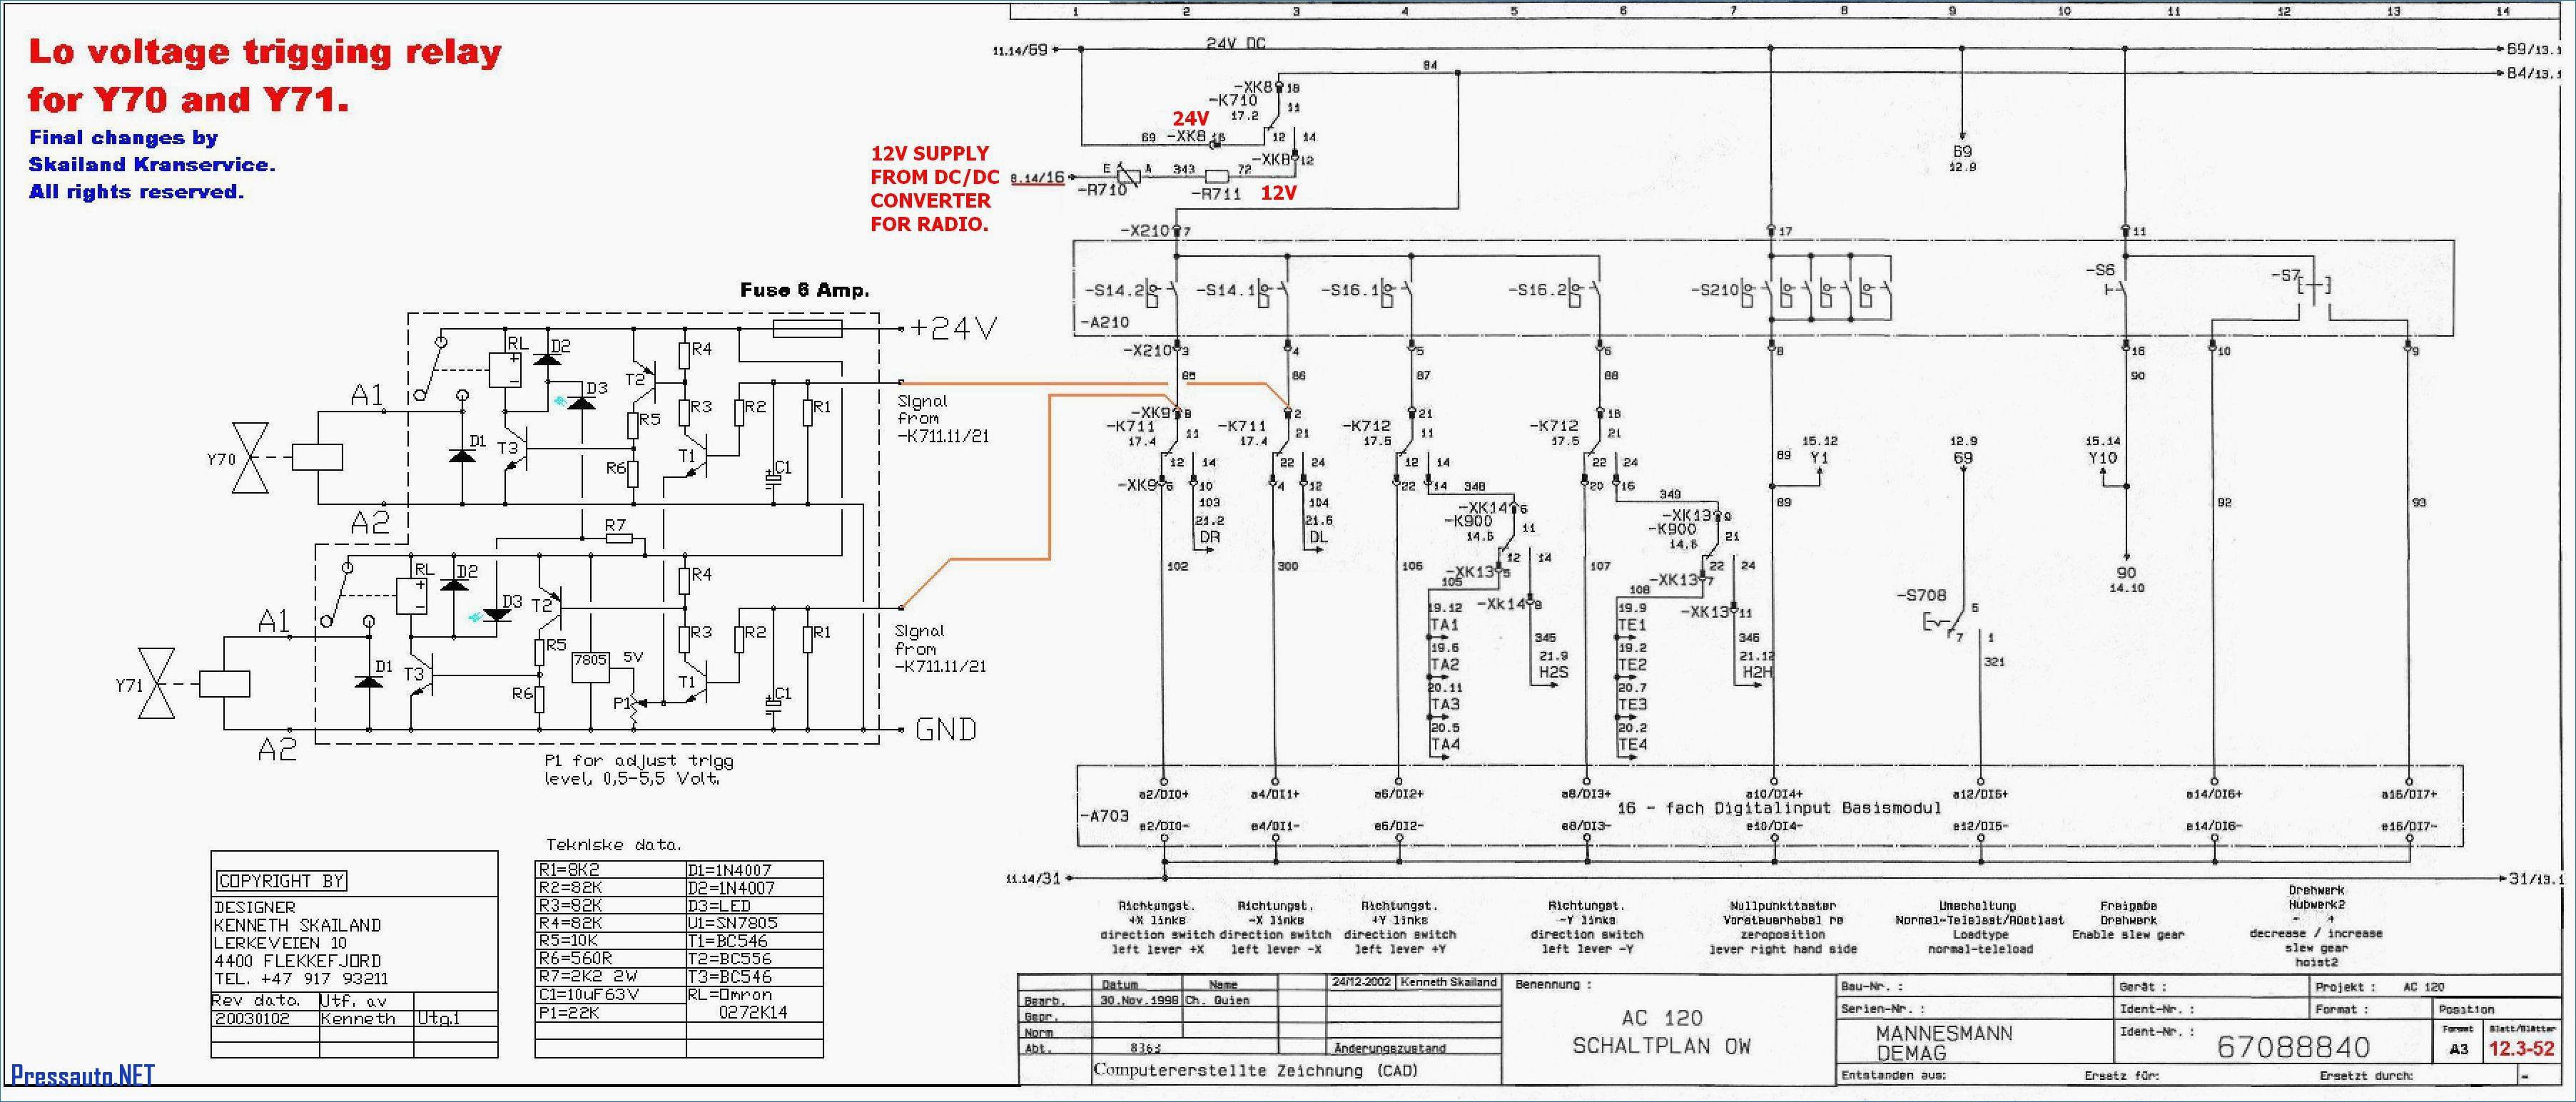 vfd wiring diagram sample wiring diagram sample. Black Bedroom Furniture Sets. Home Design Ideas